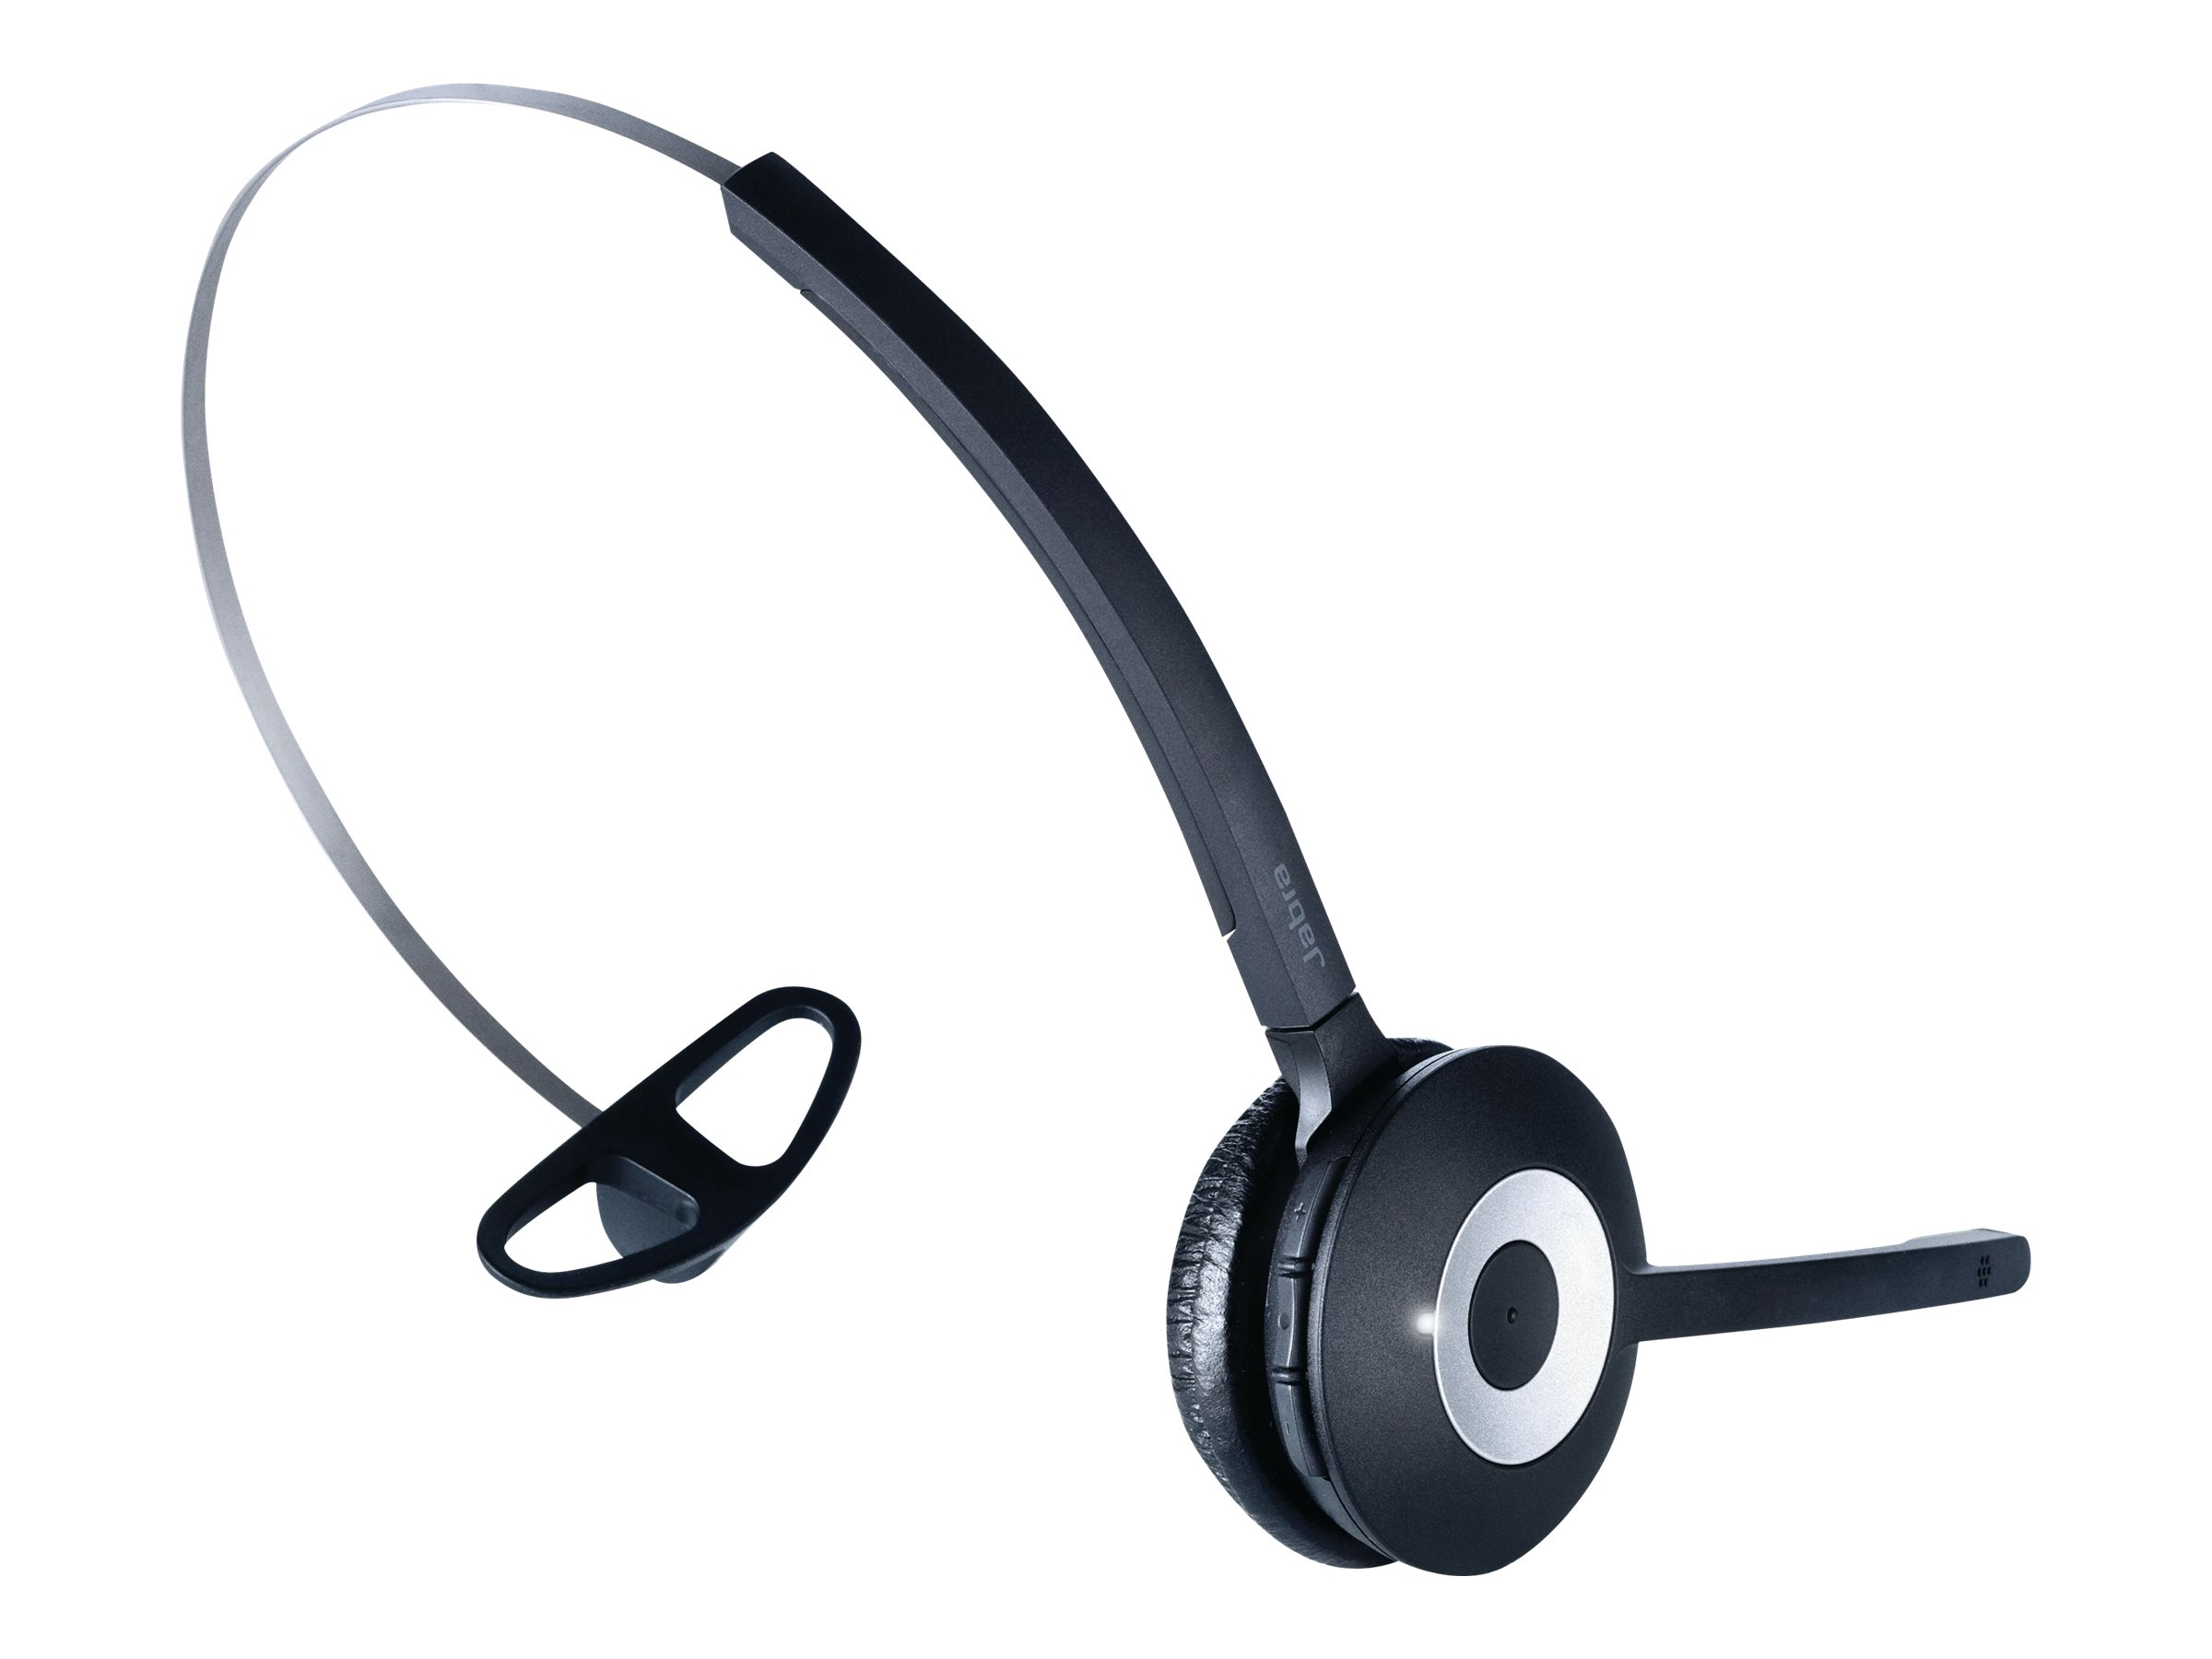 Image for Jabra PRO 900 - headset from Circuit City